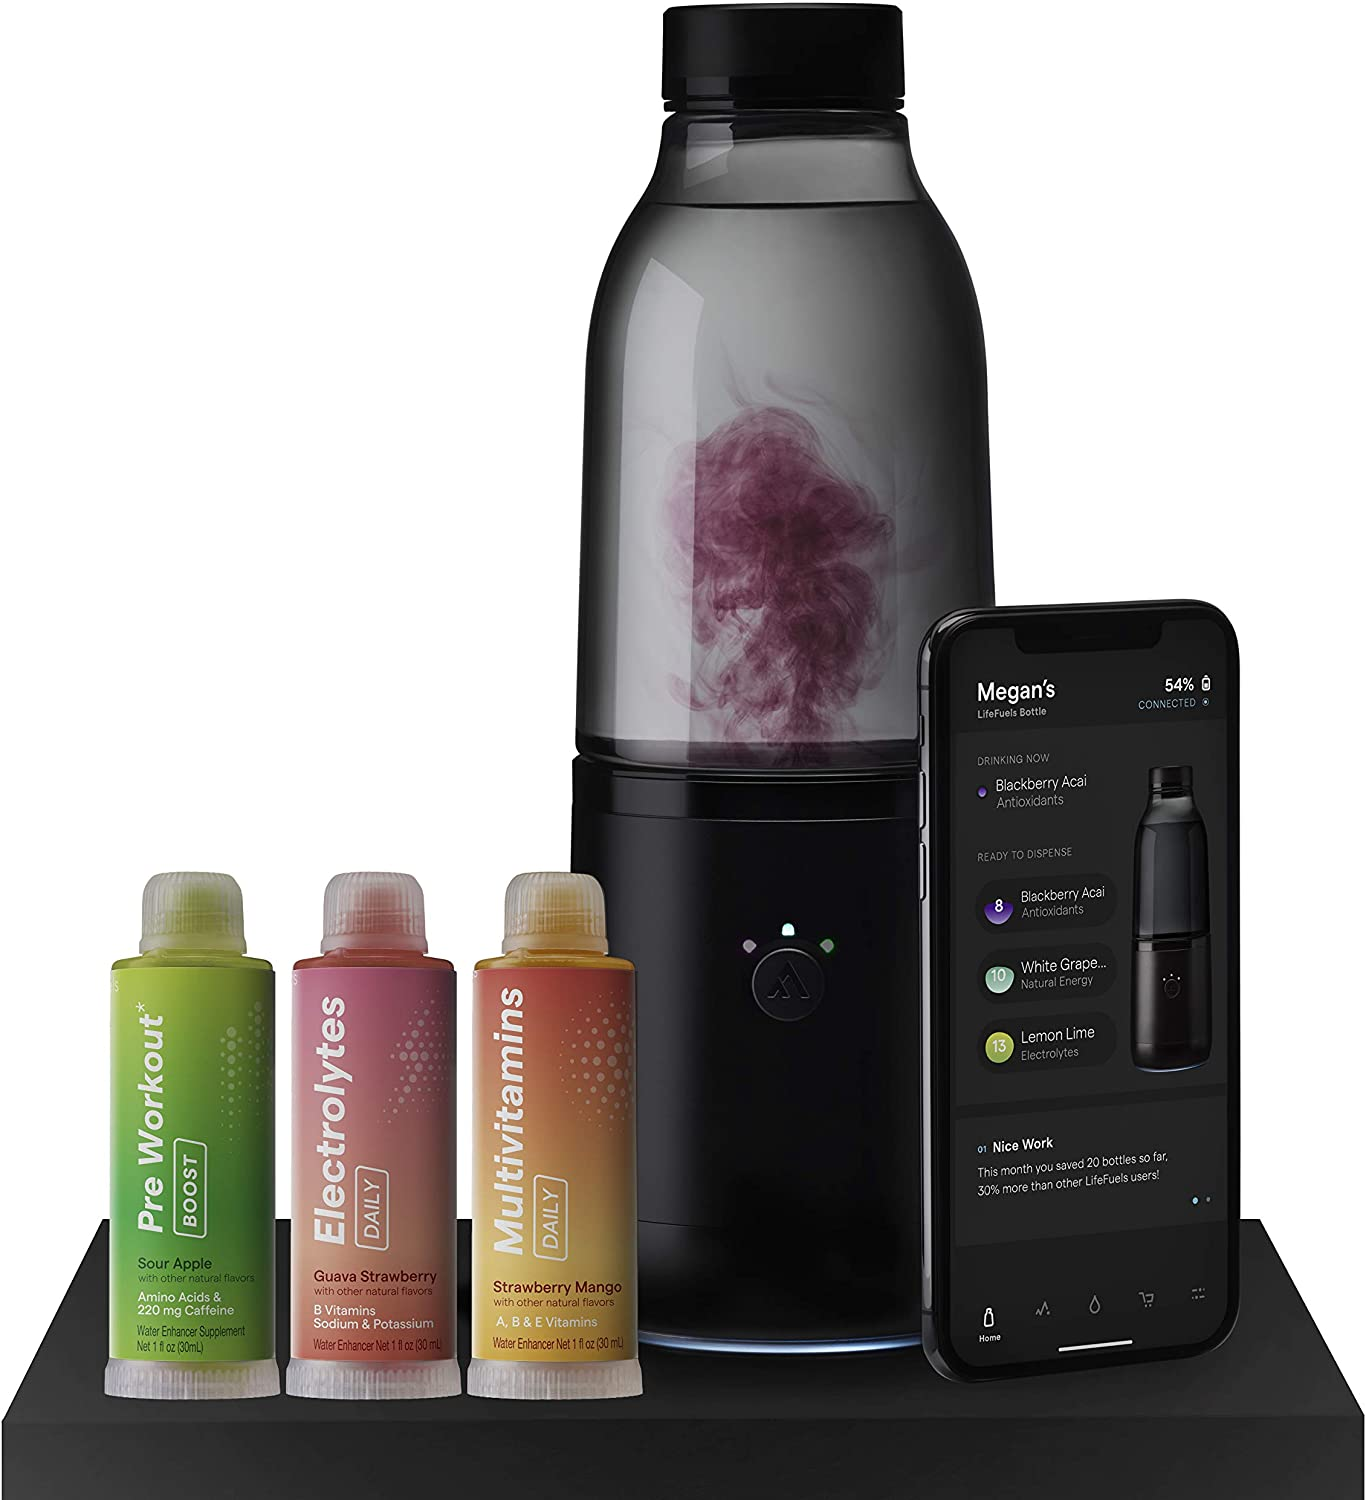 LifeFuels Smart Bottle - Water and Healthy Beverage Infuser with Tracking App - Wearable Technology for Hydration, Fitness and Nutrition Tracking - Use for Travel, Sports and More